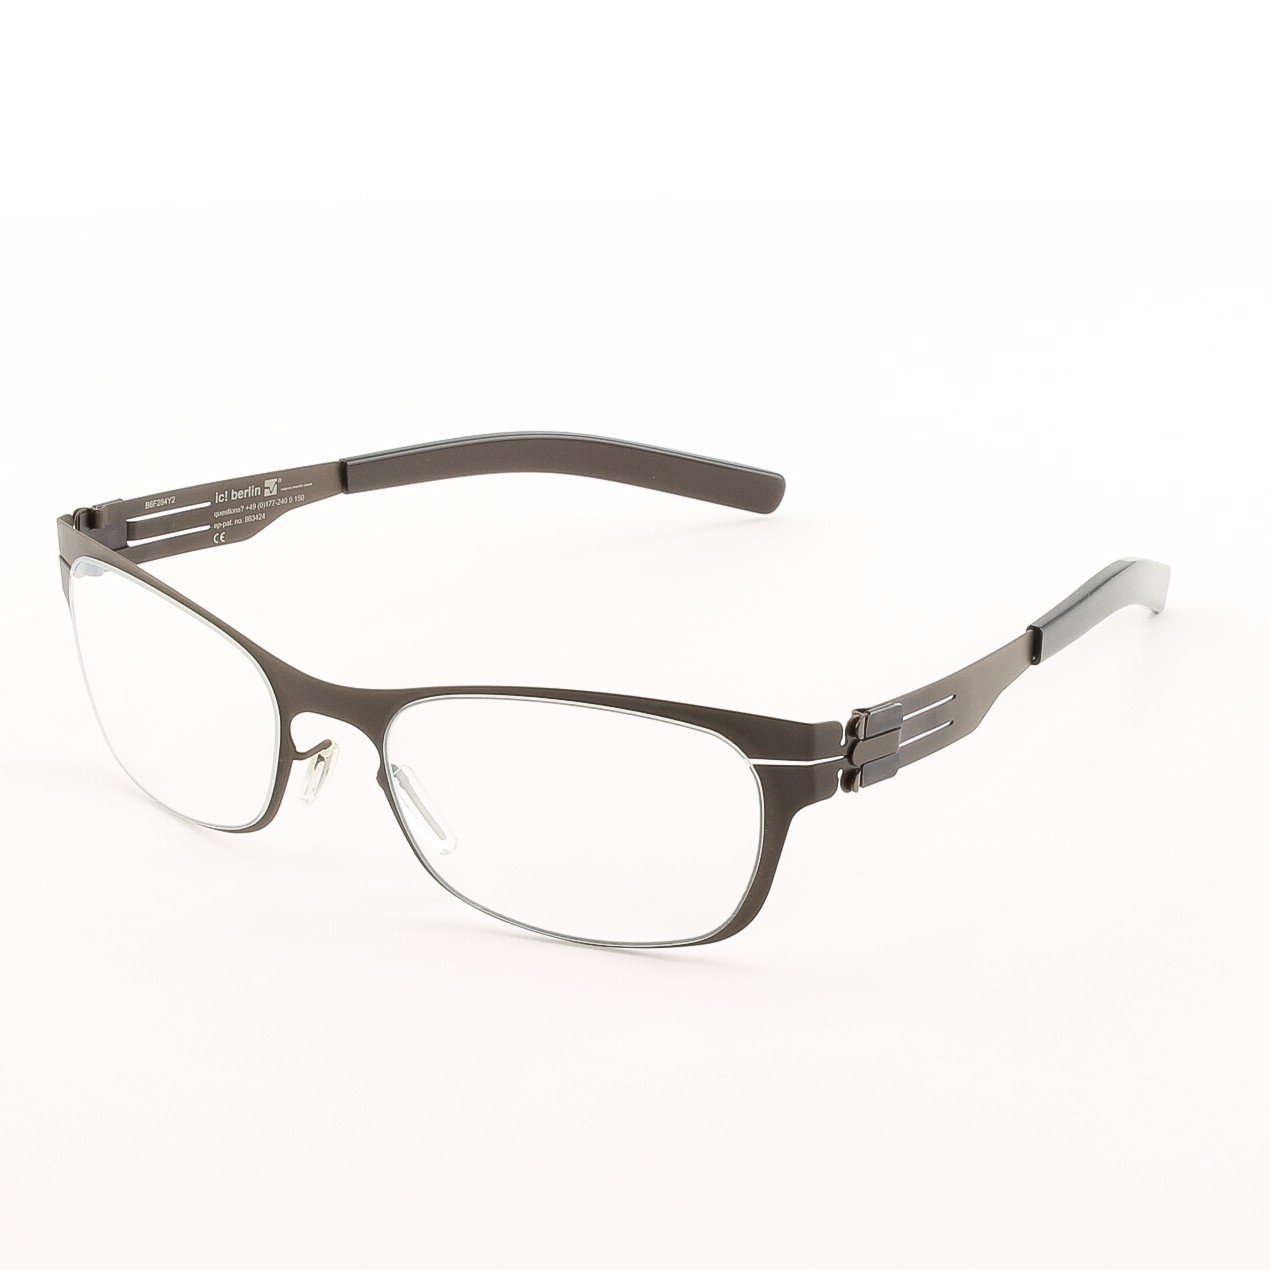 ic! Berlin Charmante Eyeglasses Col. Chocolate Brown with Clear Lenses